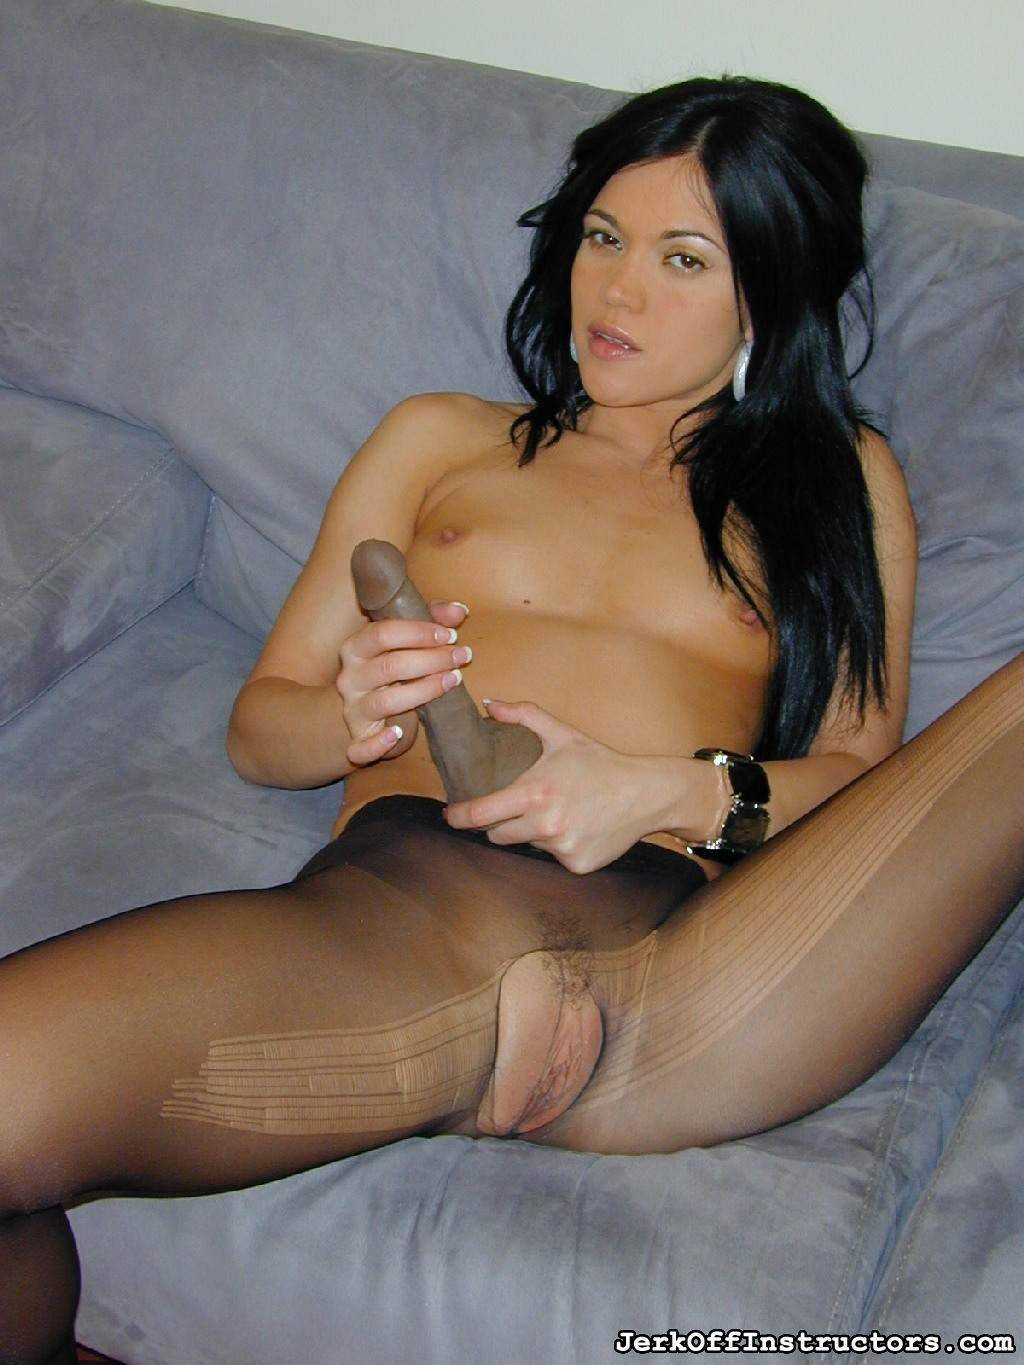 Picture #13 of Goddess is pantyhose would better deal with rubber cock than with your tiny penis: watch her inserting the toy into the hole in the nylon